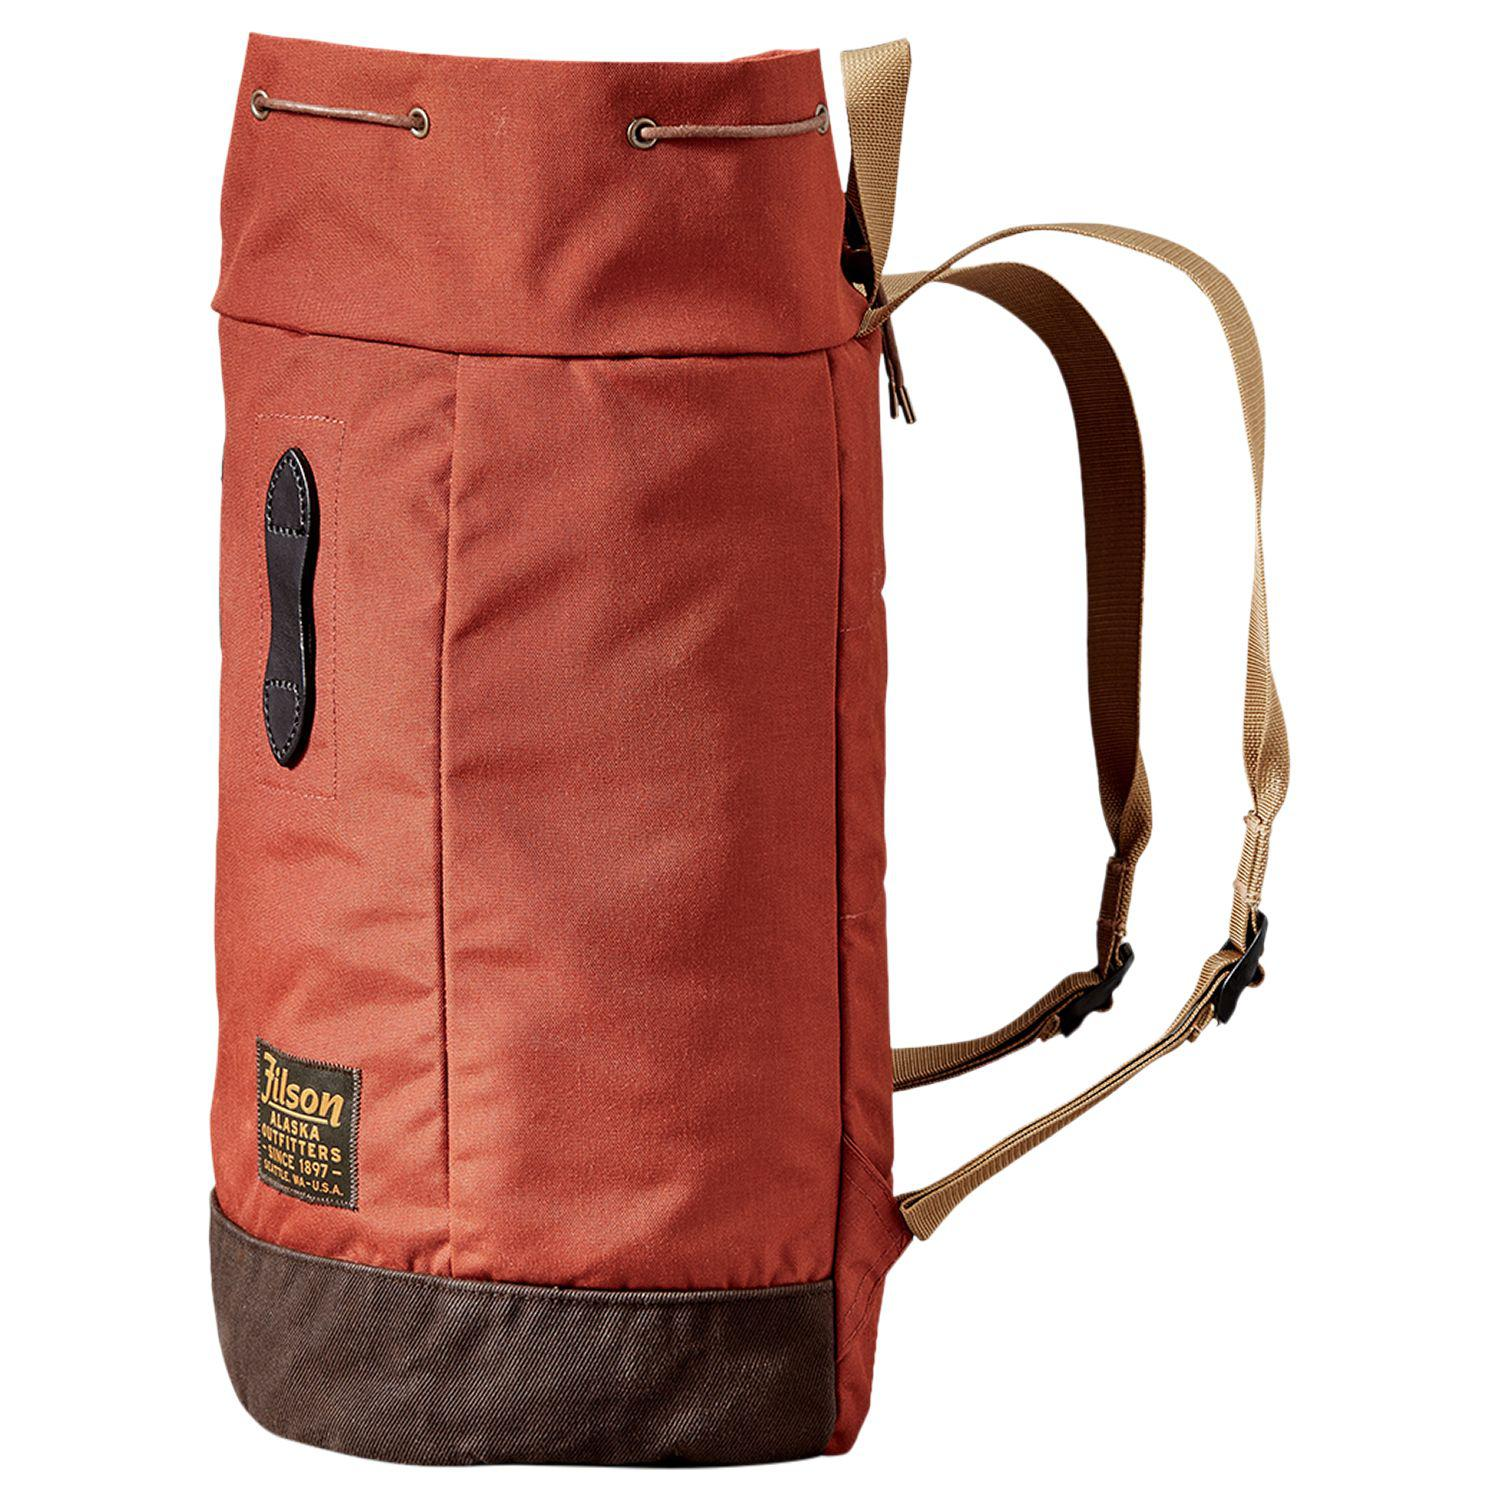 Filson Synthetic Ballistic Nylon Day Backpack in Rust Red (Red) for Men